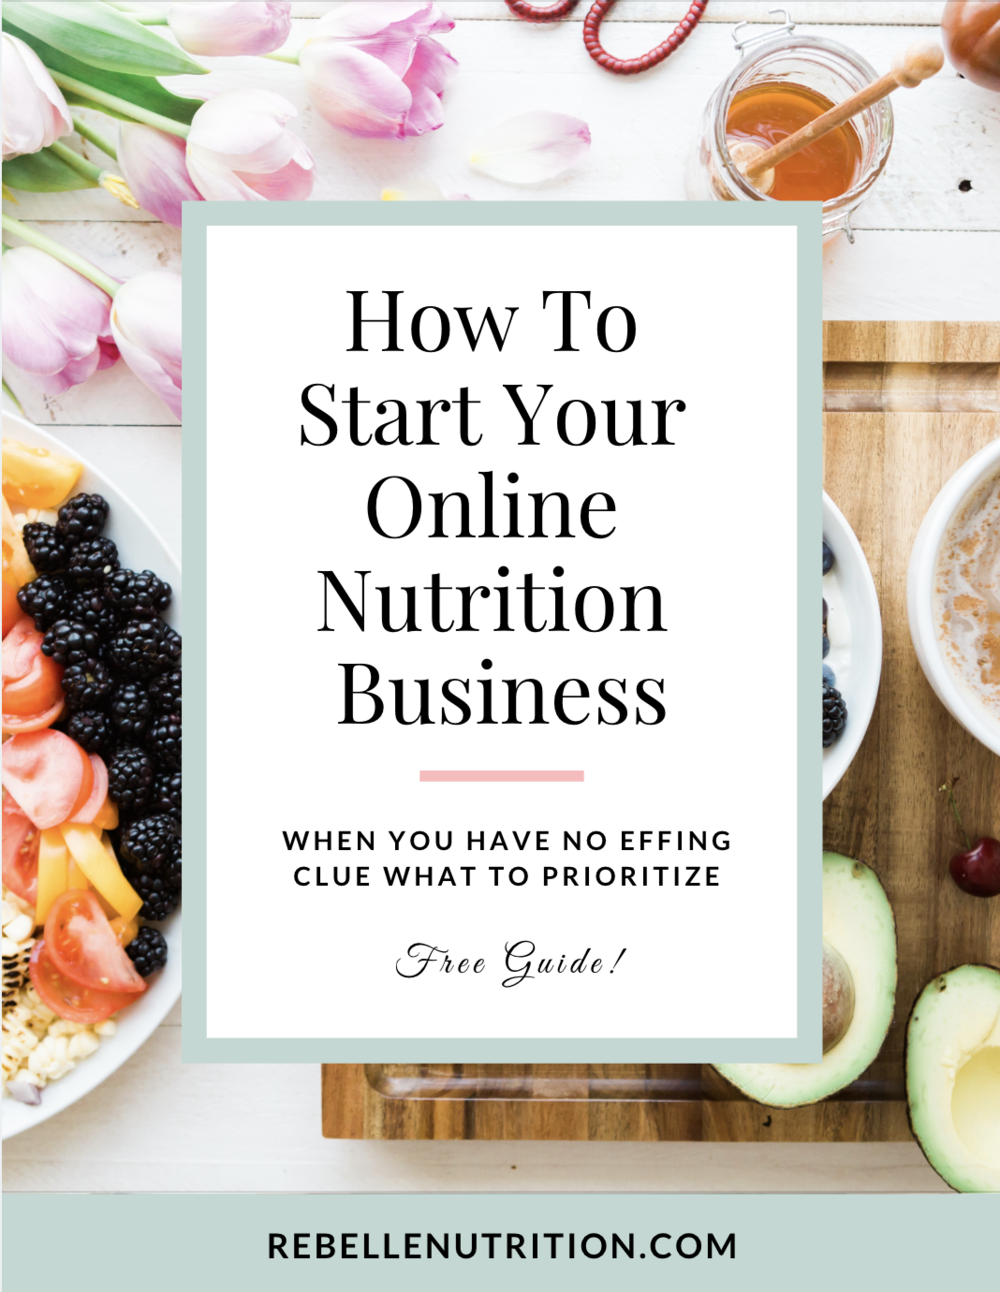 How to start your online nutrition business